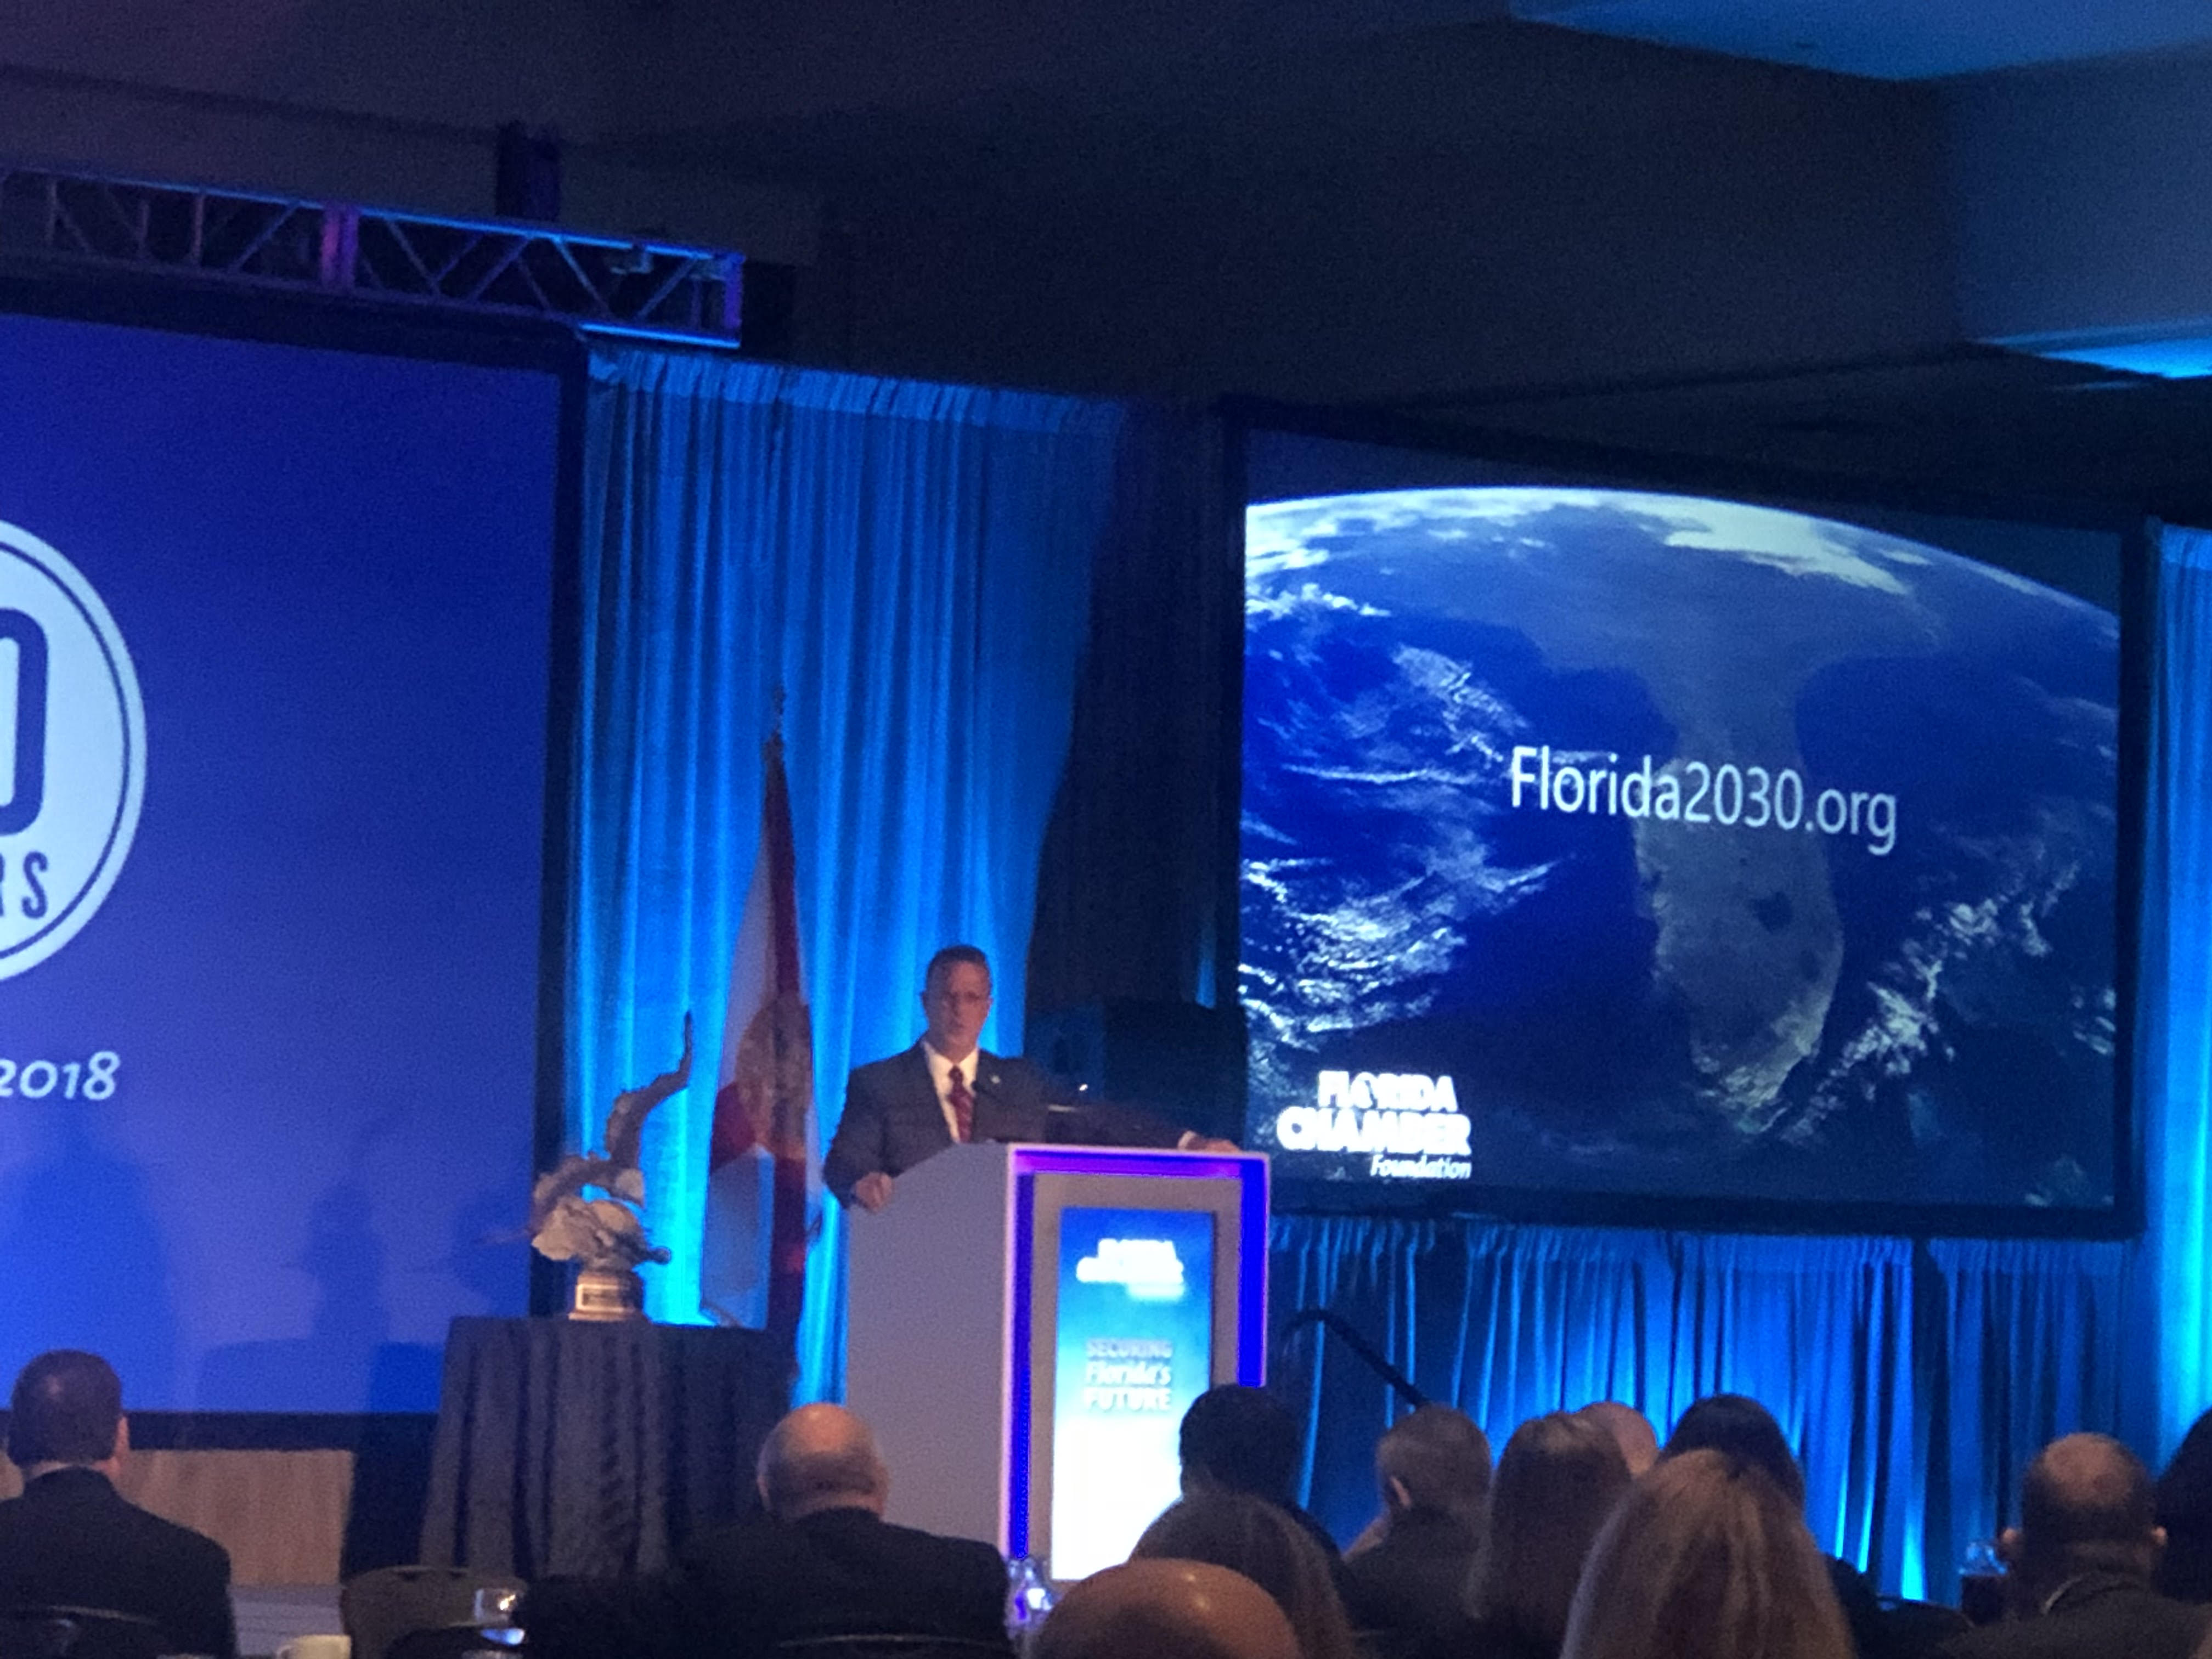 Florida Chamber unveils 2030 research and targets, announces endorsements